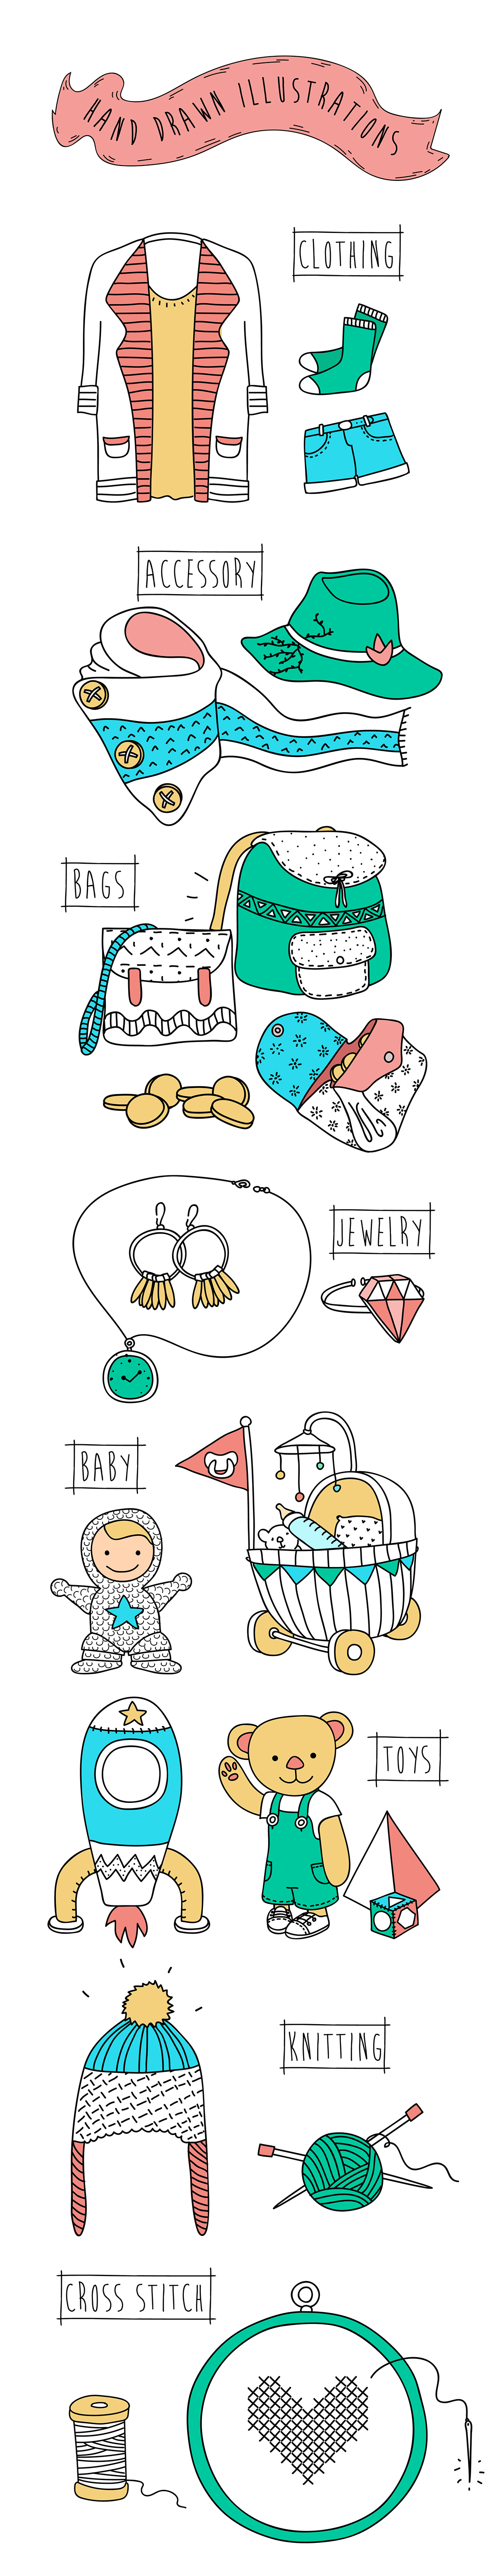 icons hand drawn home baby toy Accessory